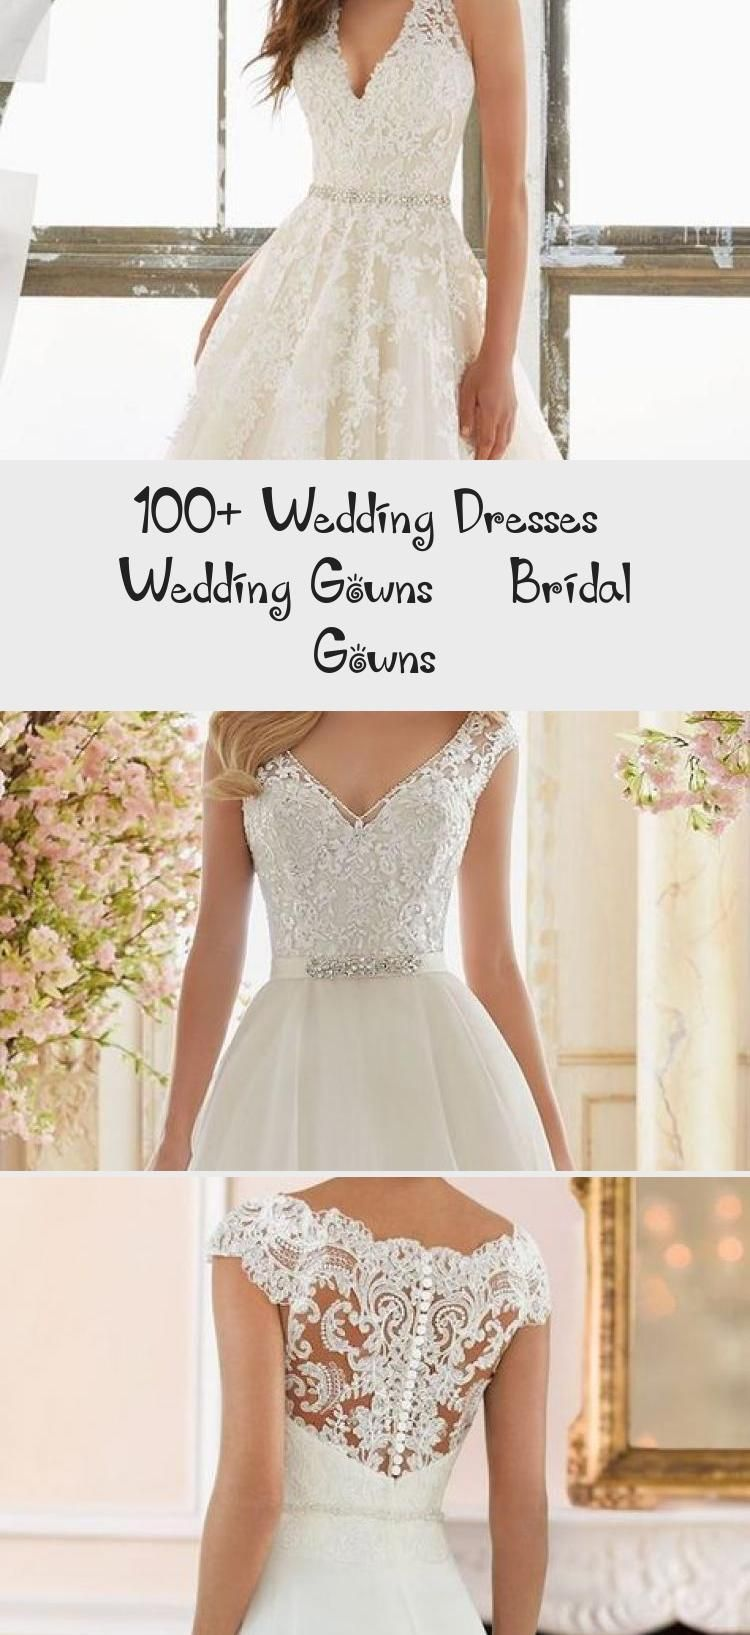 Photo of 100+ Wedding Dresses | Wedding Gowns | Bridal Gowns – Fashion | Fashion #wedding…